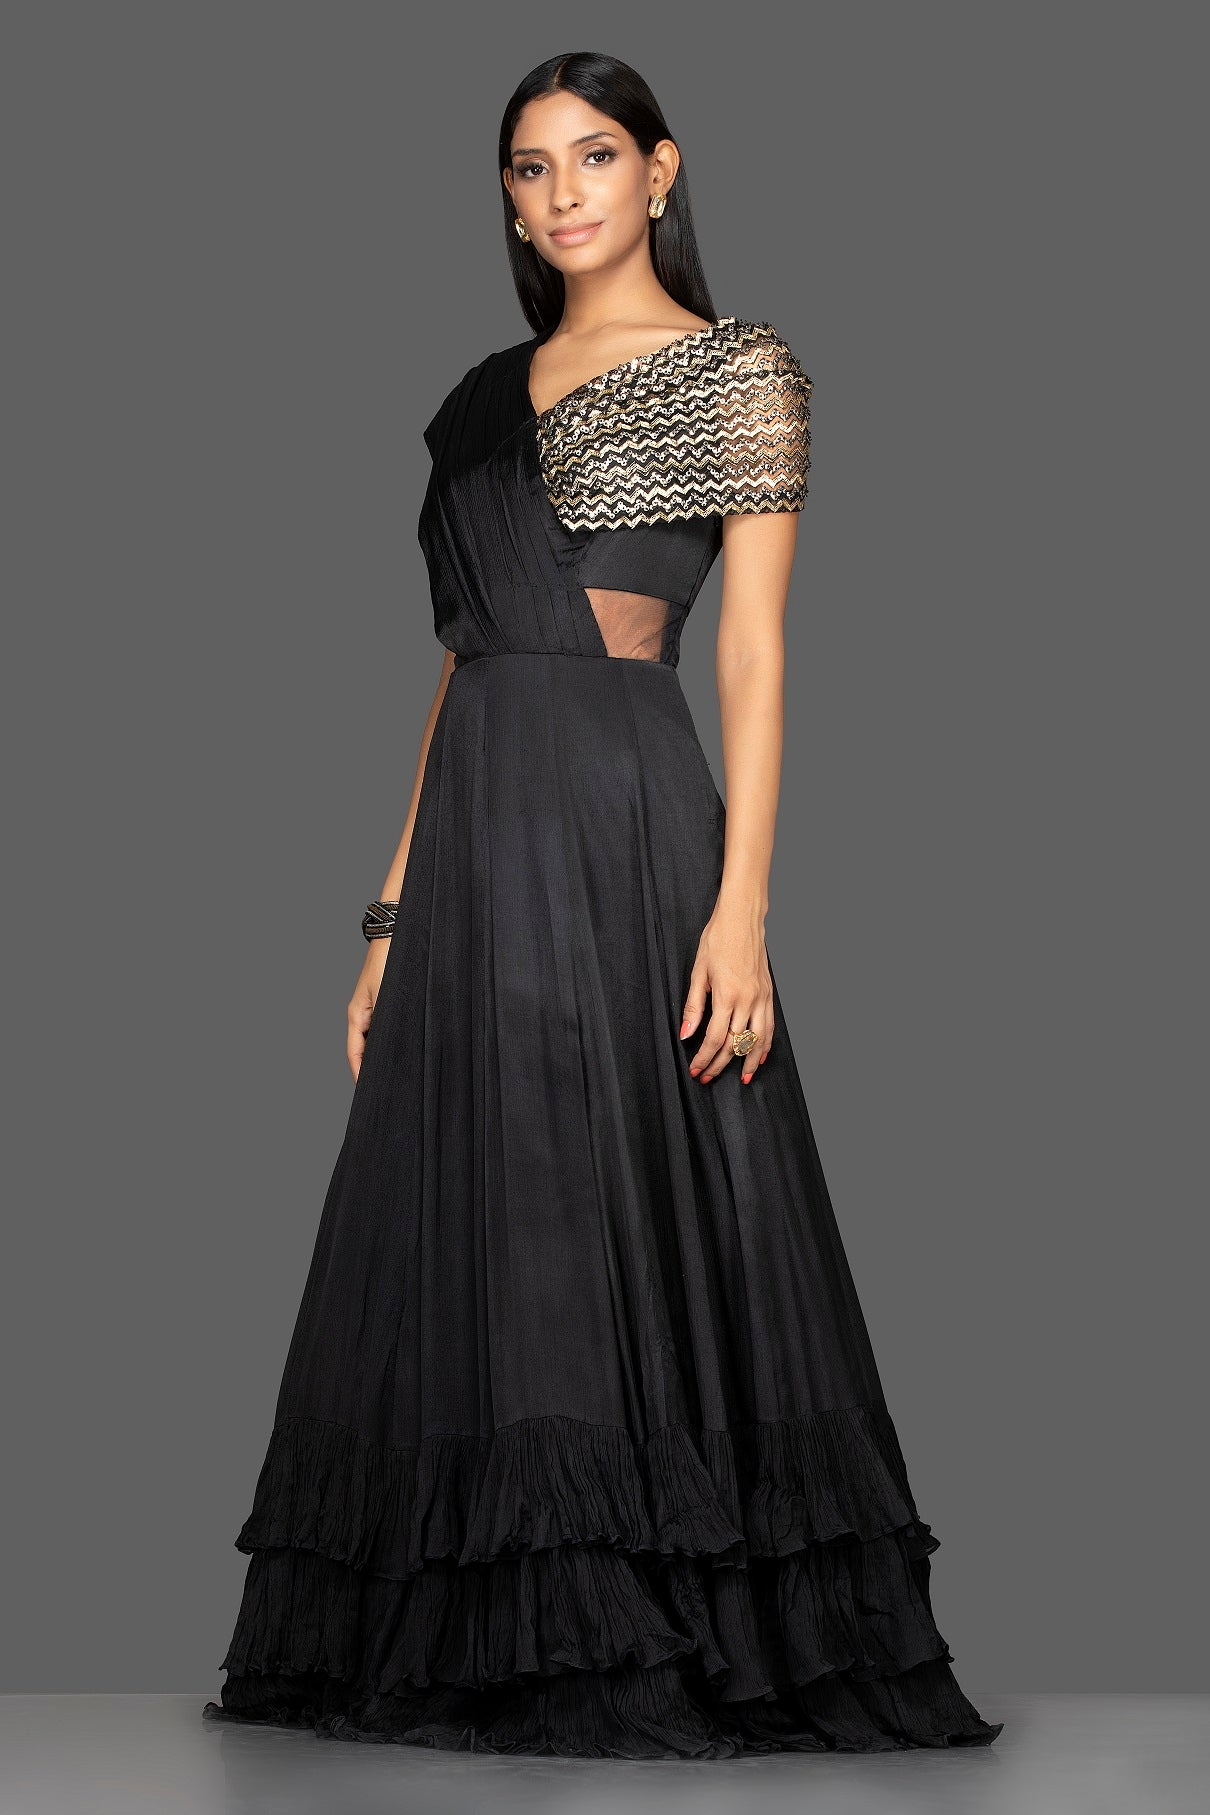 Shop stylish black embroidered georgette layered ruffle gown online in USA. Flaunt your extraordinary fashion sense with stunning Indian dresses, designer gowns from Pure Elegance Indian fashion store in USA.-side